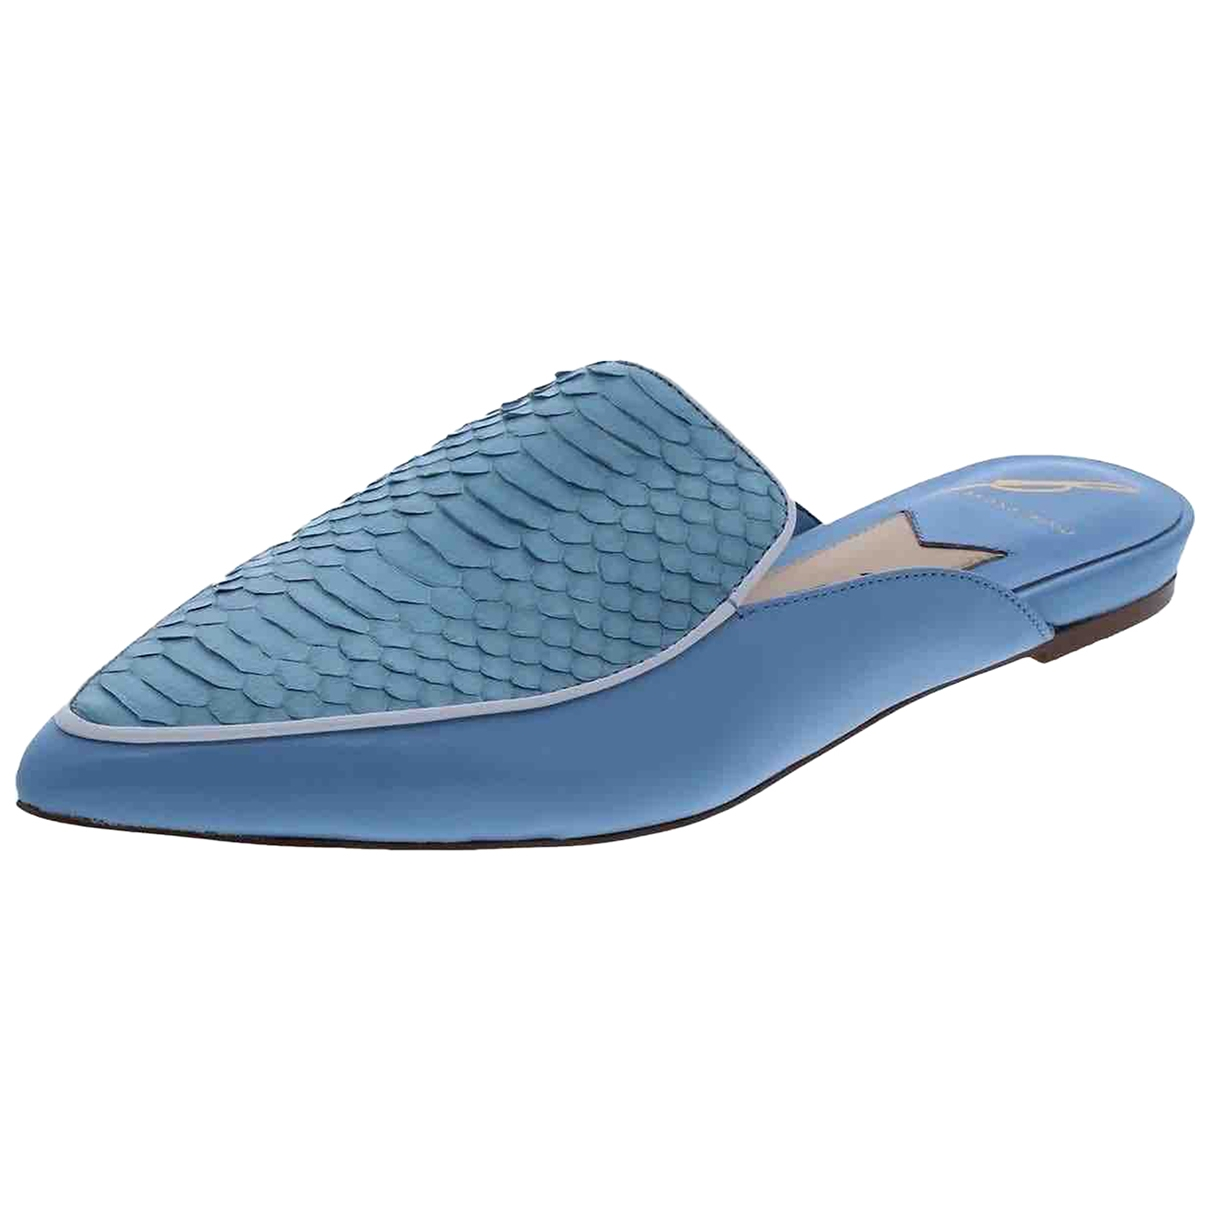 B Brian Atwood \N Blue Leather Mules & Clogs for Women 36.5 EU